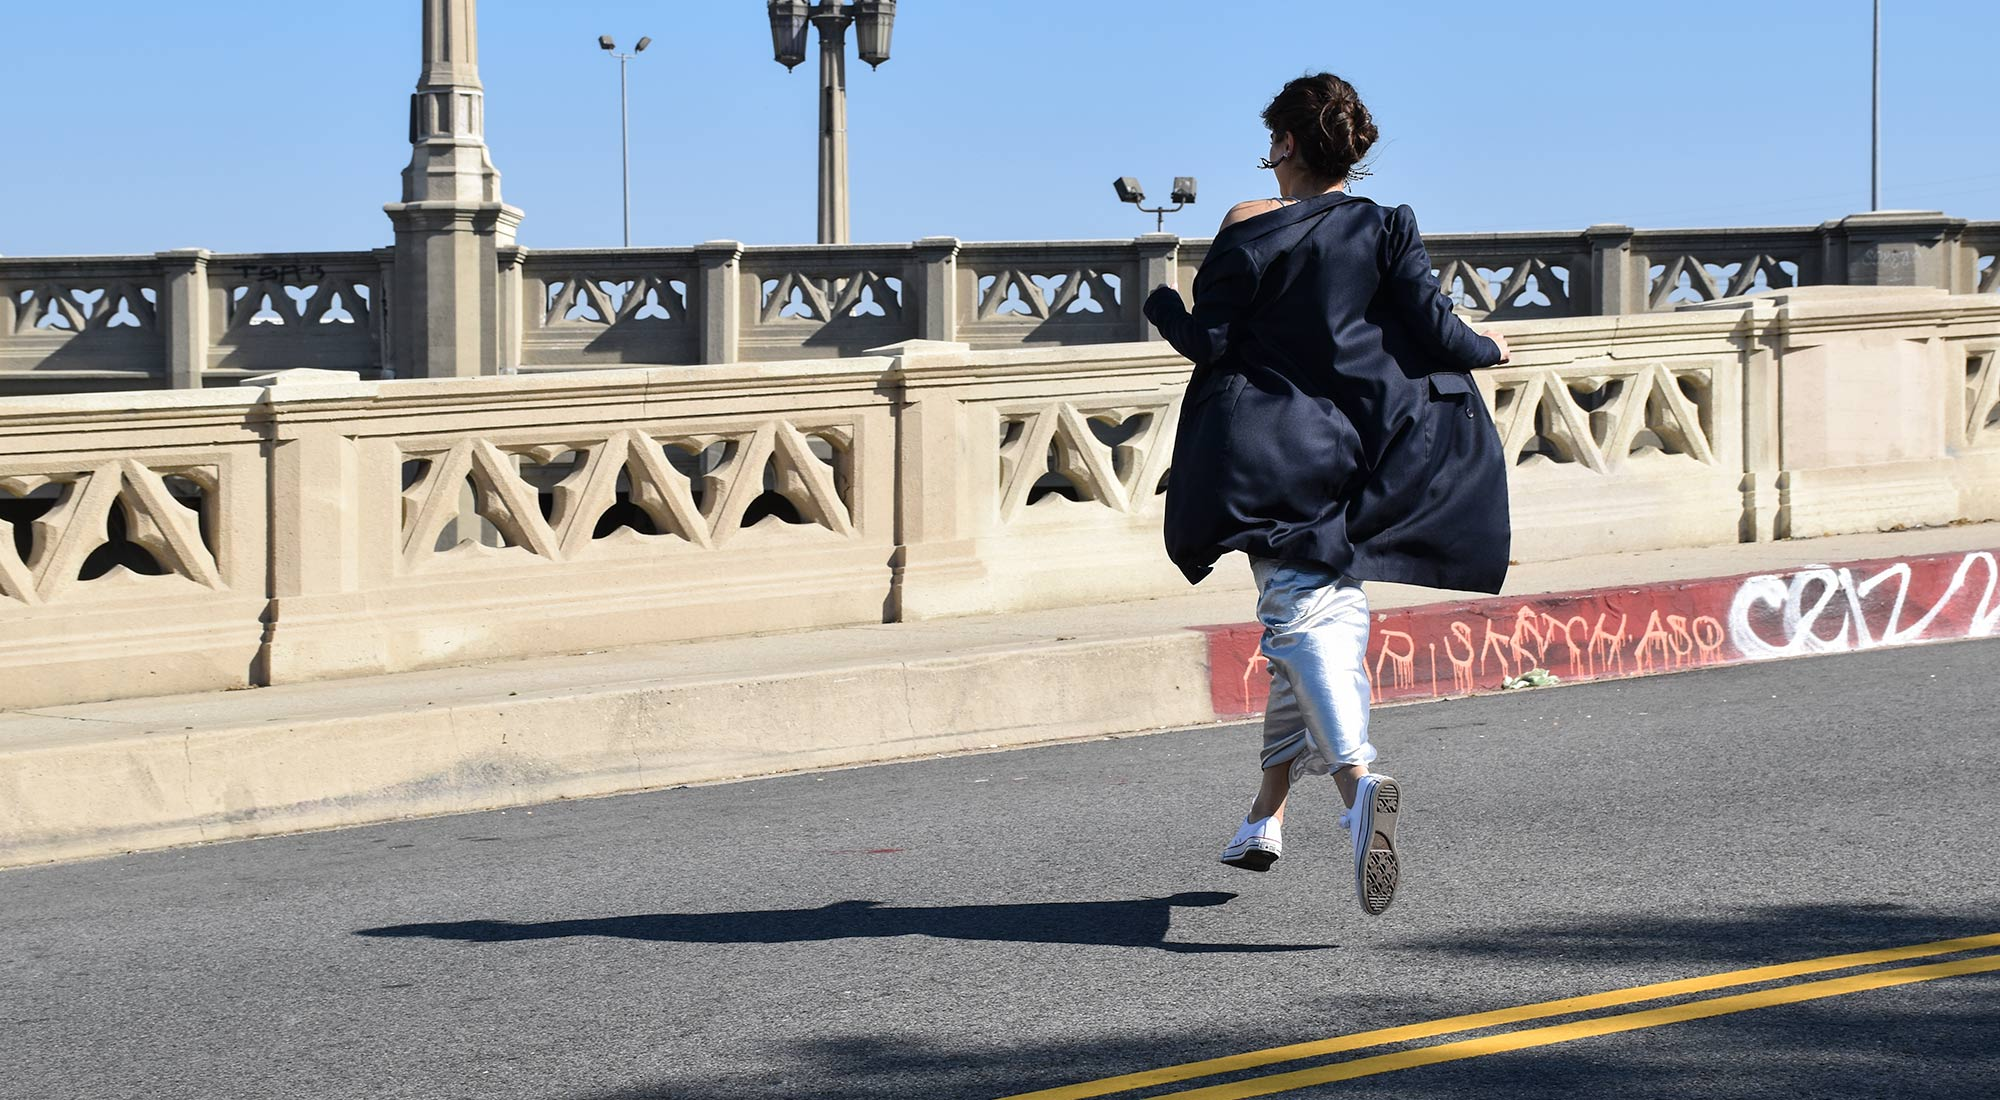 Jumping on The Bridge in a Silk Dress